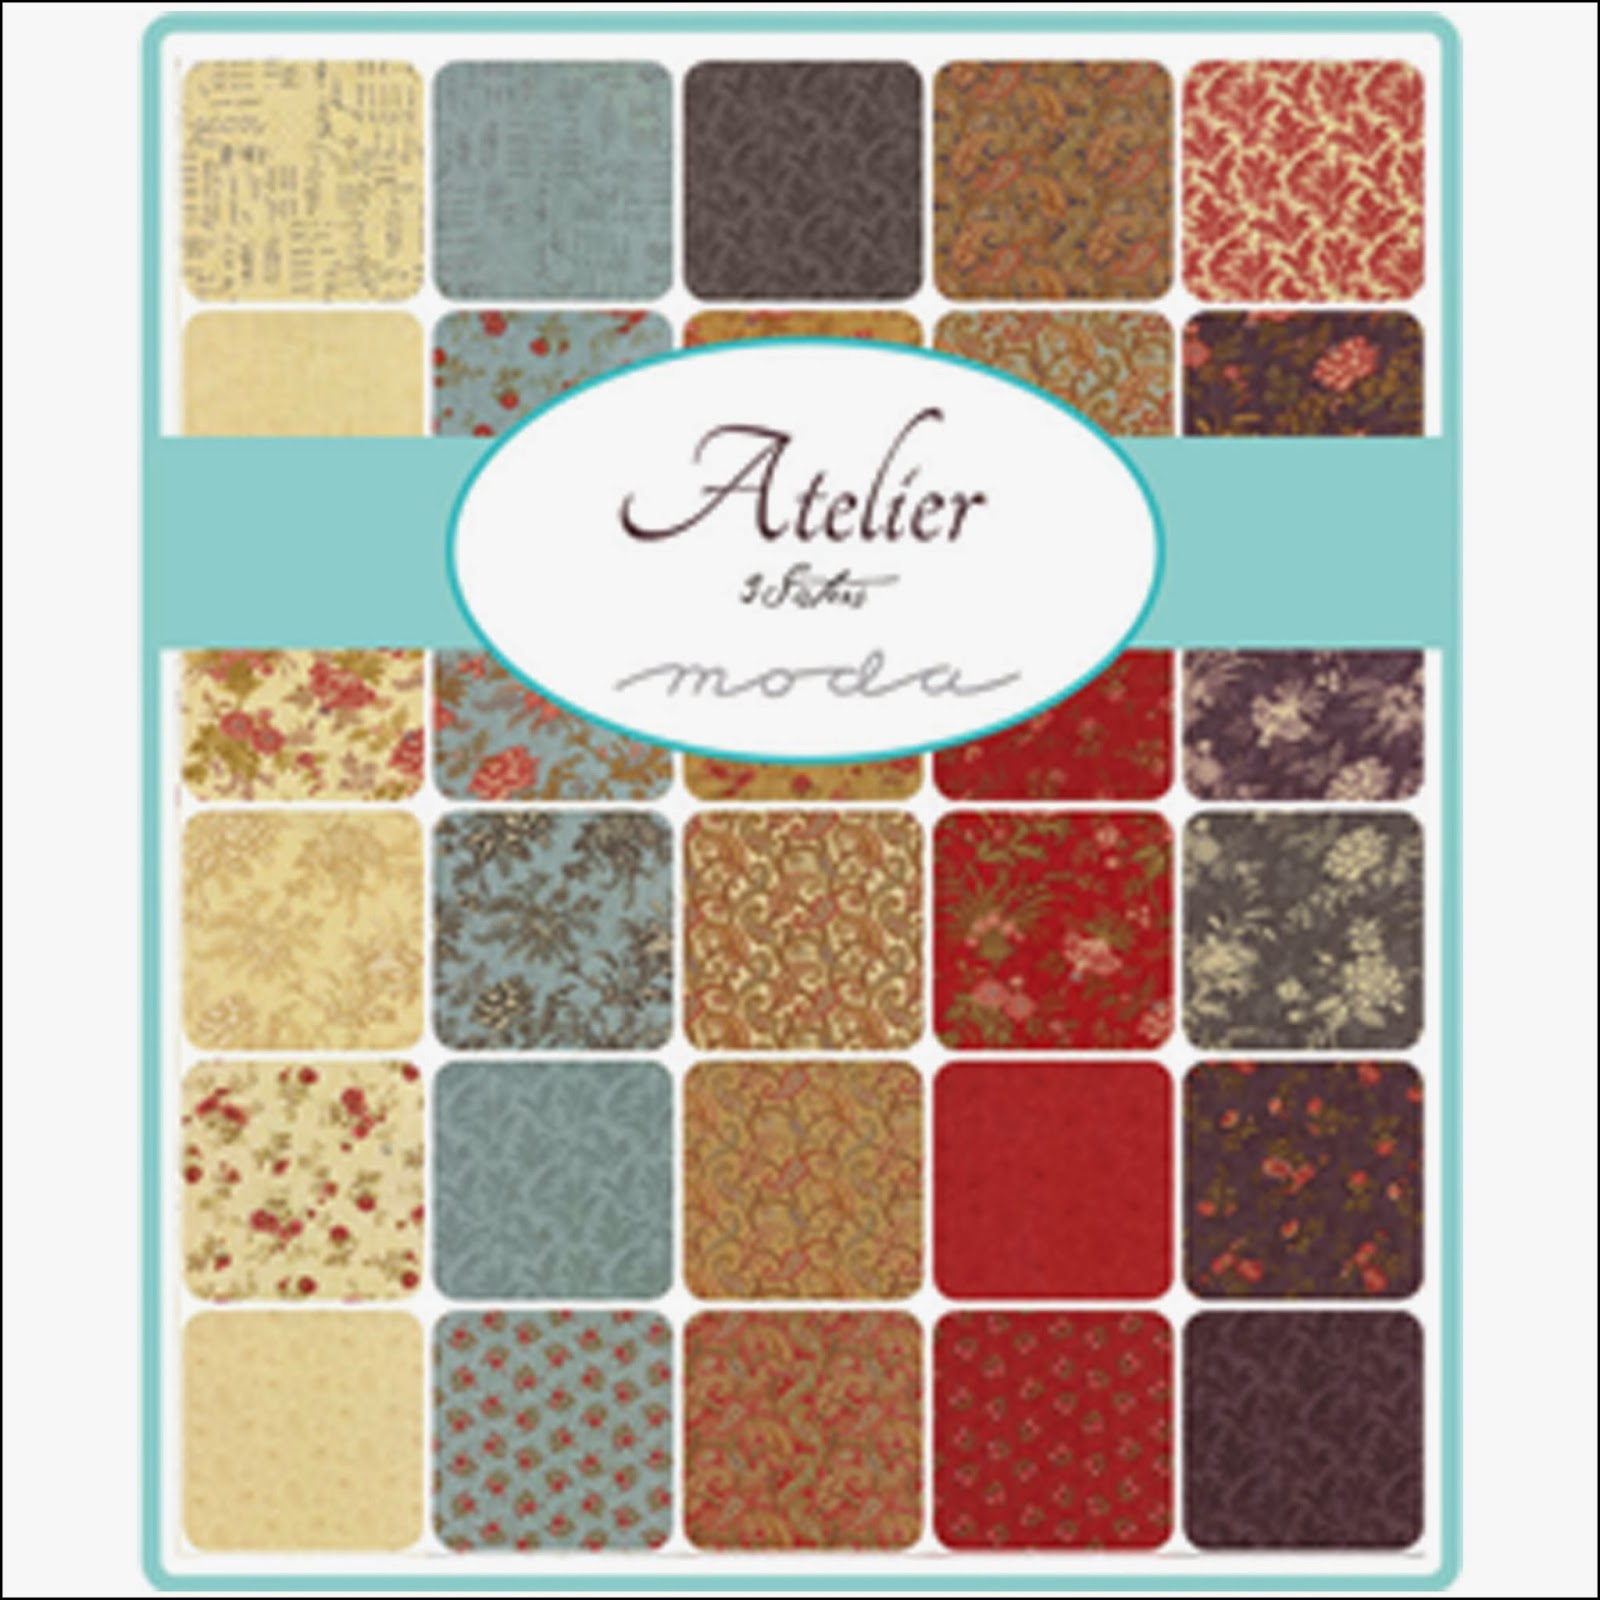 Moda ATELIER Quilt Fabric by 3 Sisters for Moda Fabrics